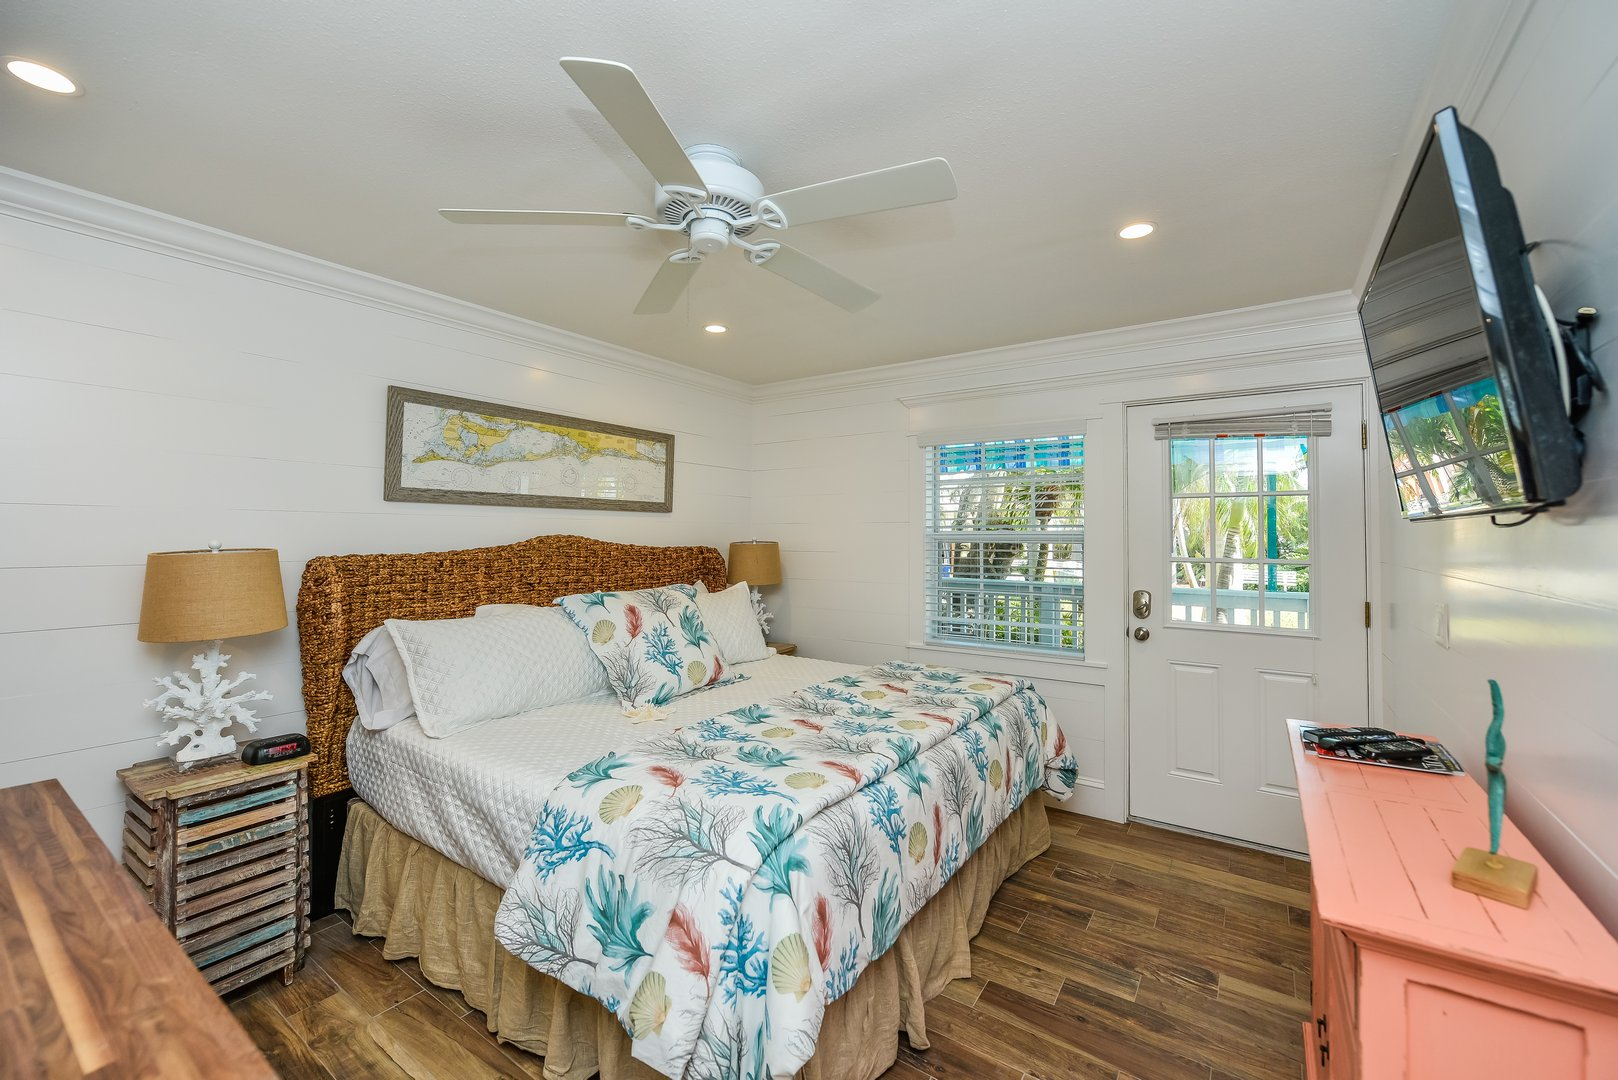 King-Sized Bedroom Overview